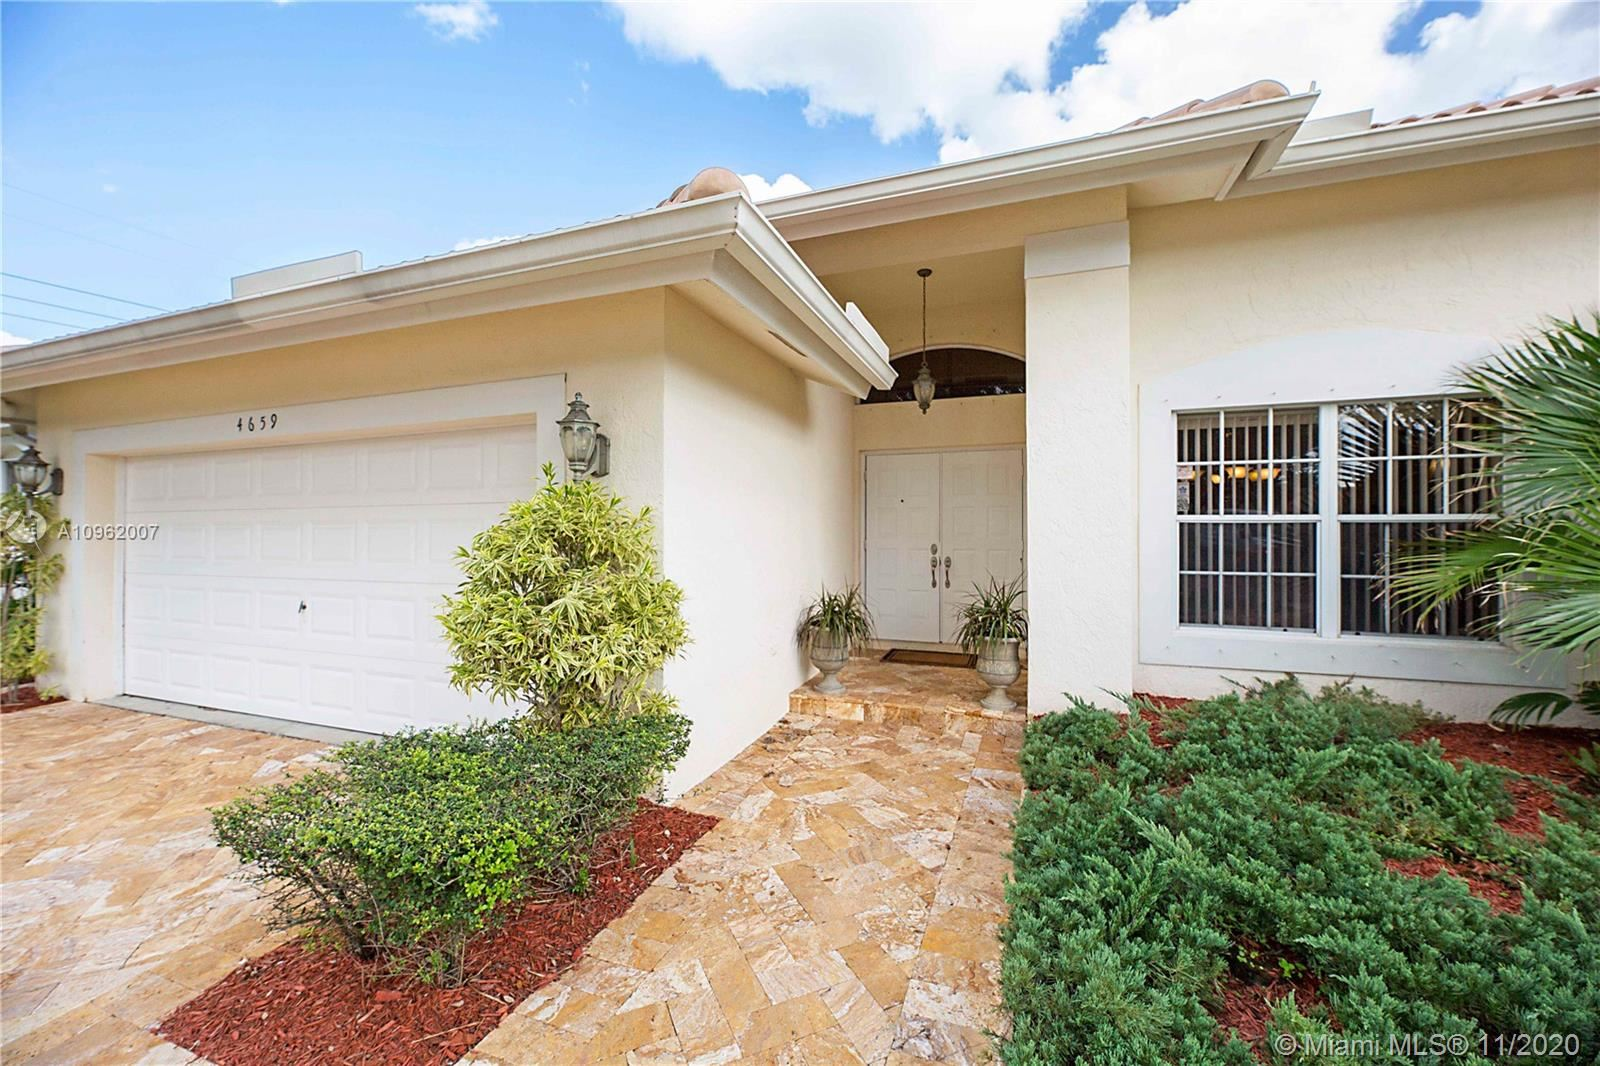 Photo of 4659 NW 99th Ter, Coral Springs, FL 33076 (MLS # A10962007)